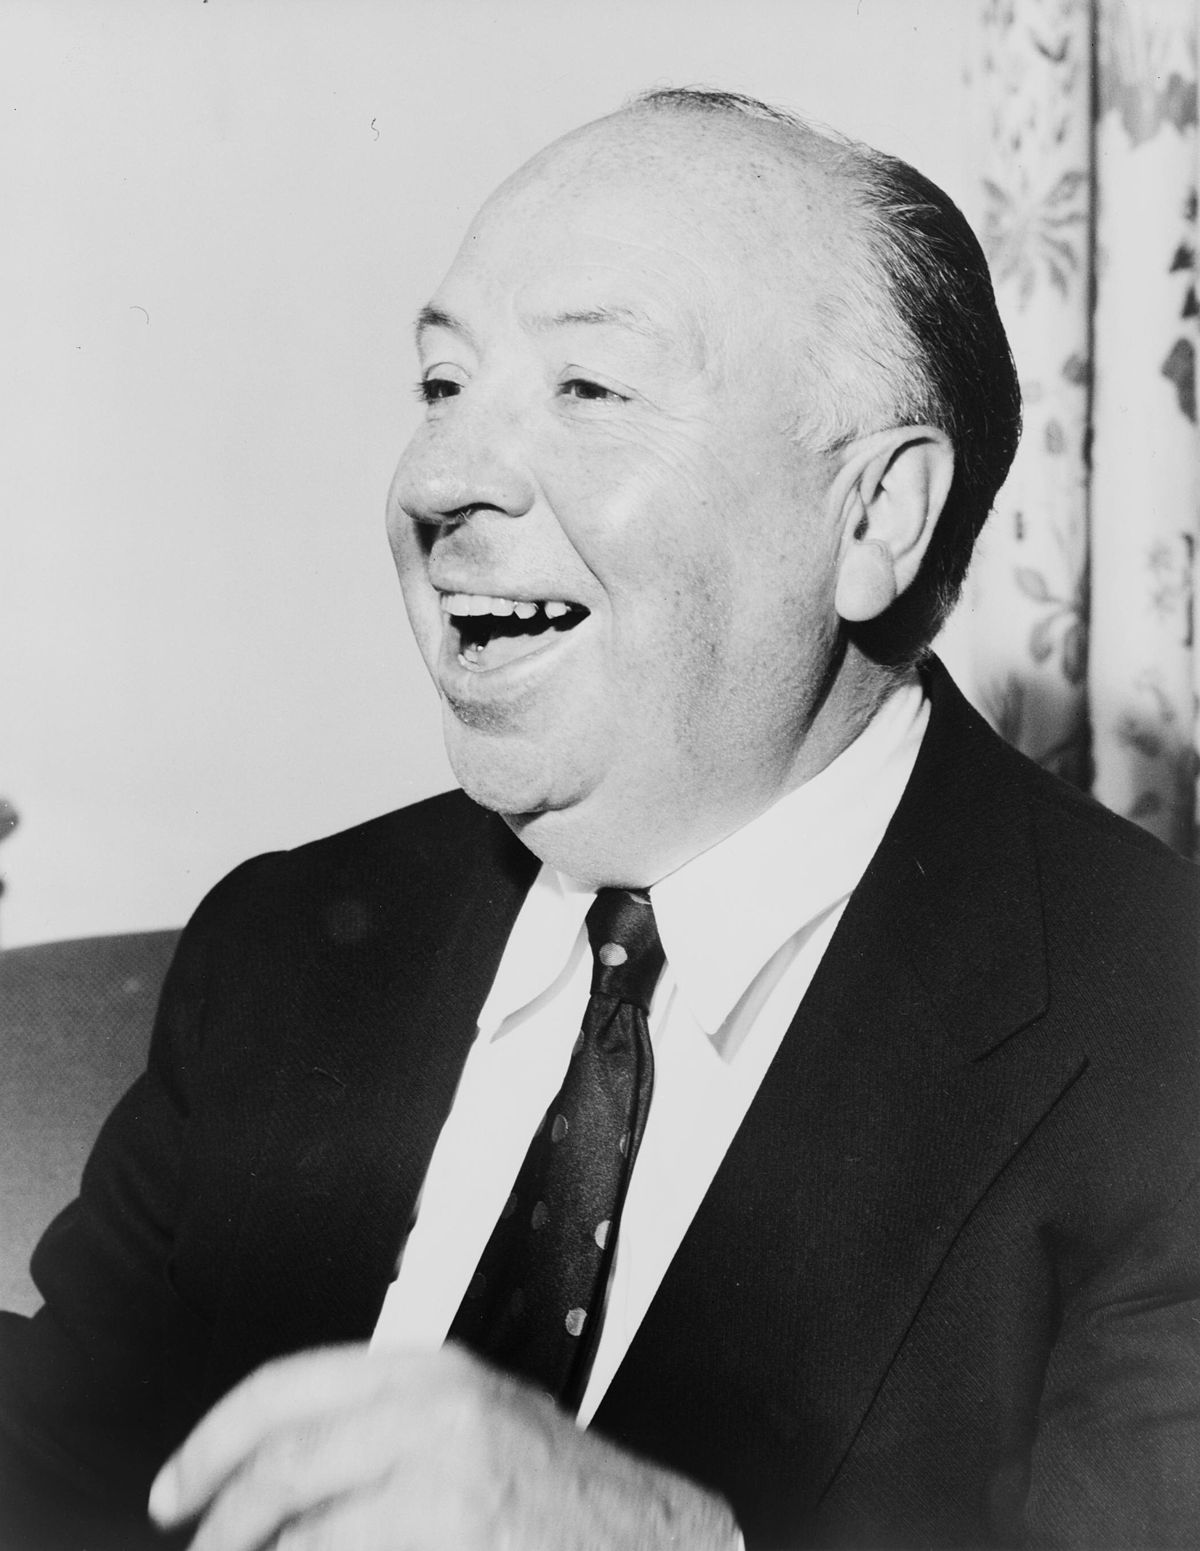 alfred hitchcock wikipedia